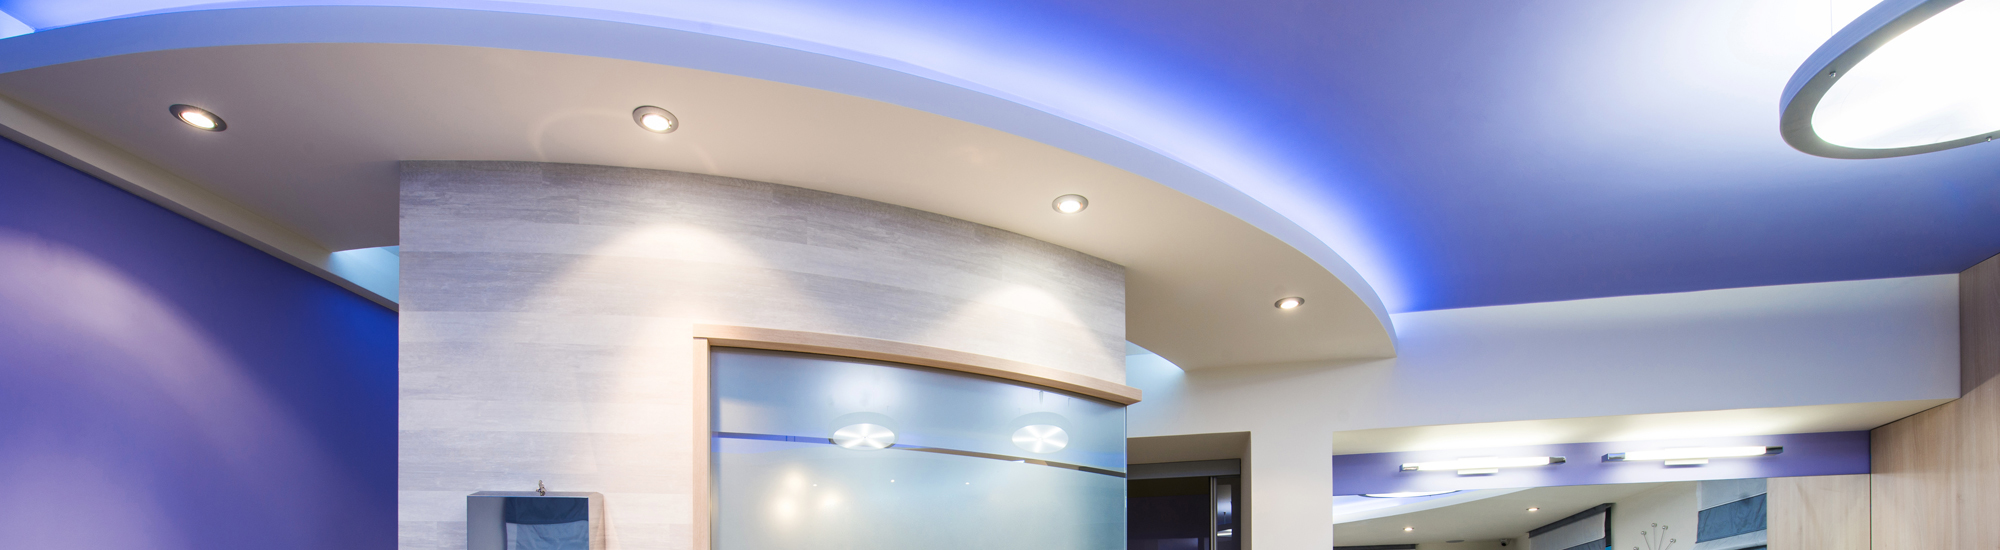 LED light fitted false ceiling of a commercial space